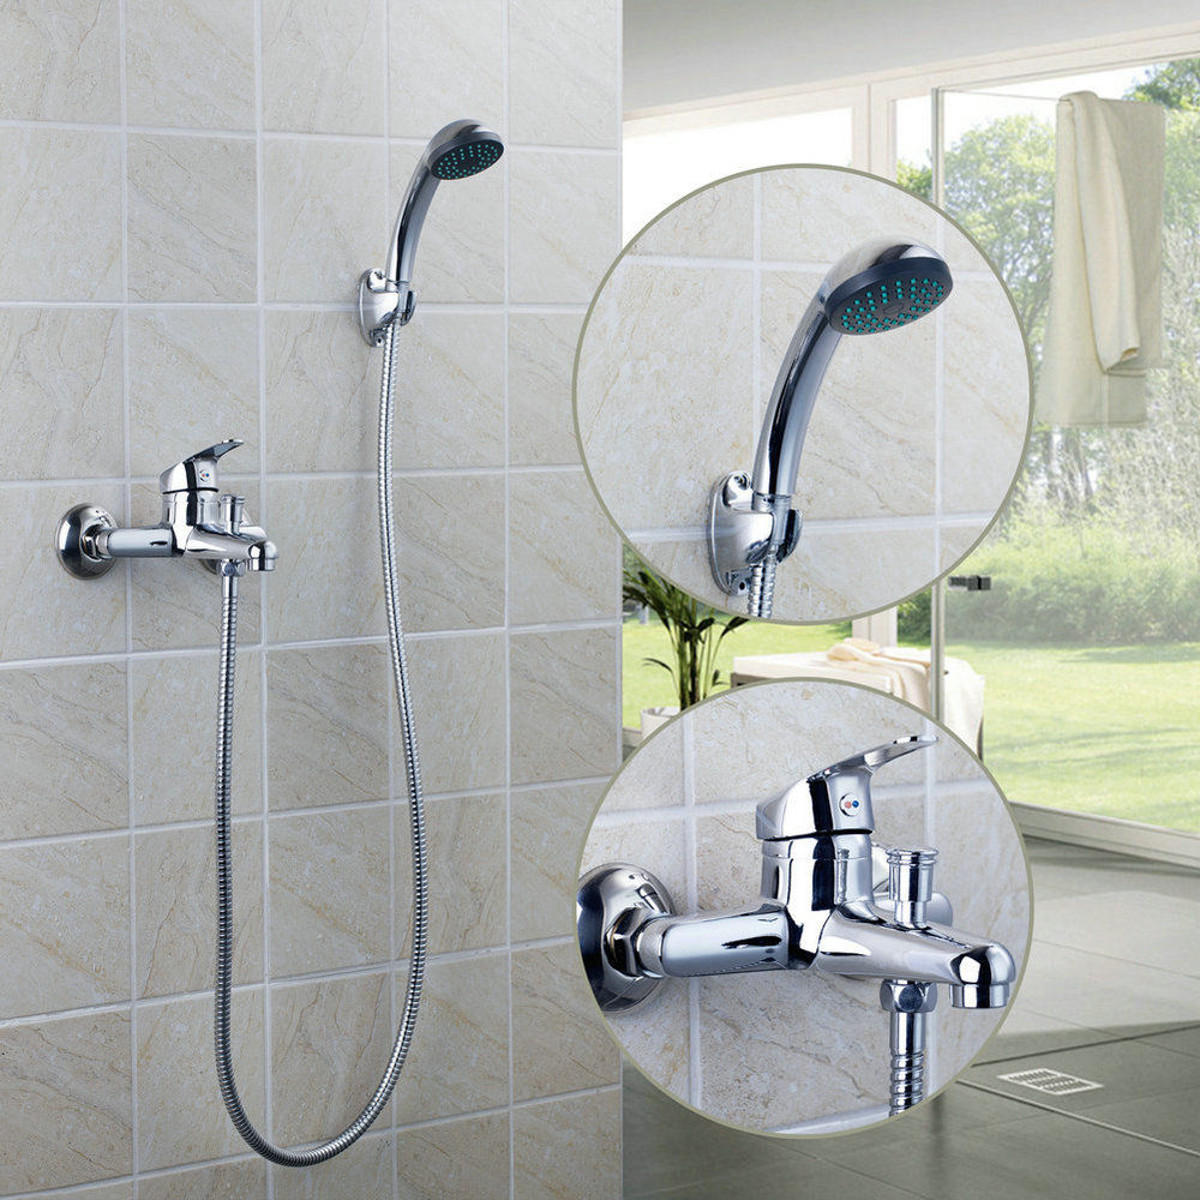 Bathroom Faucets.Chrome Wall Mounted Bathroom Bathtub Shower Faucet Set Mixer With